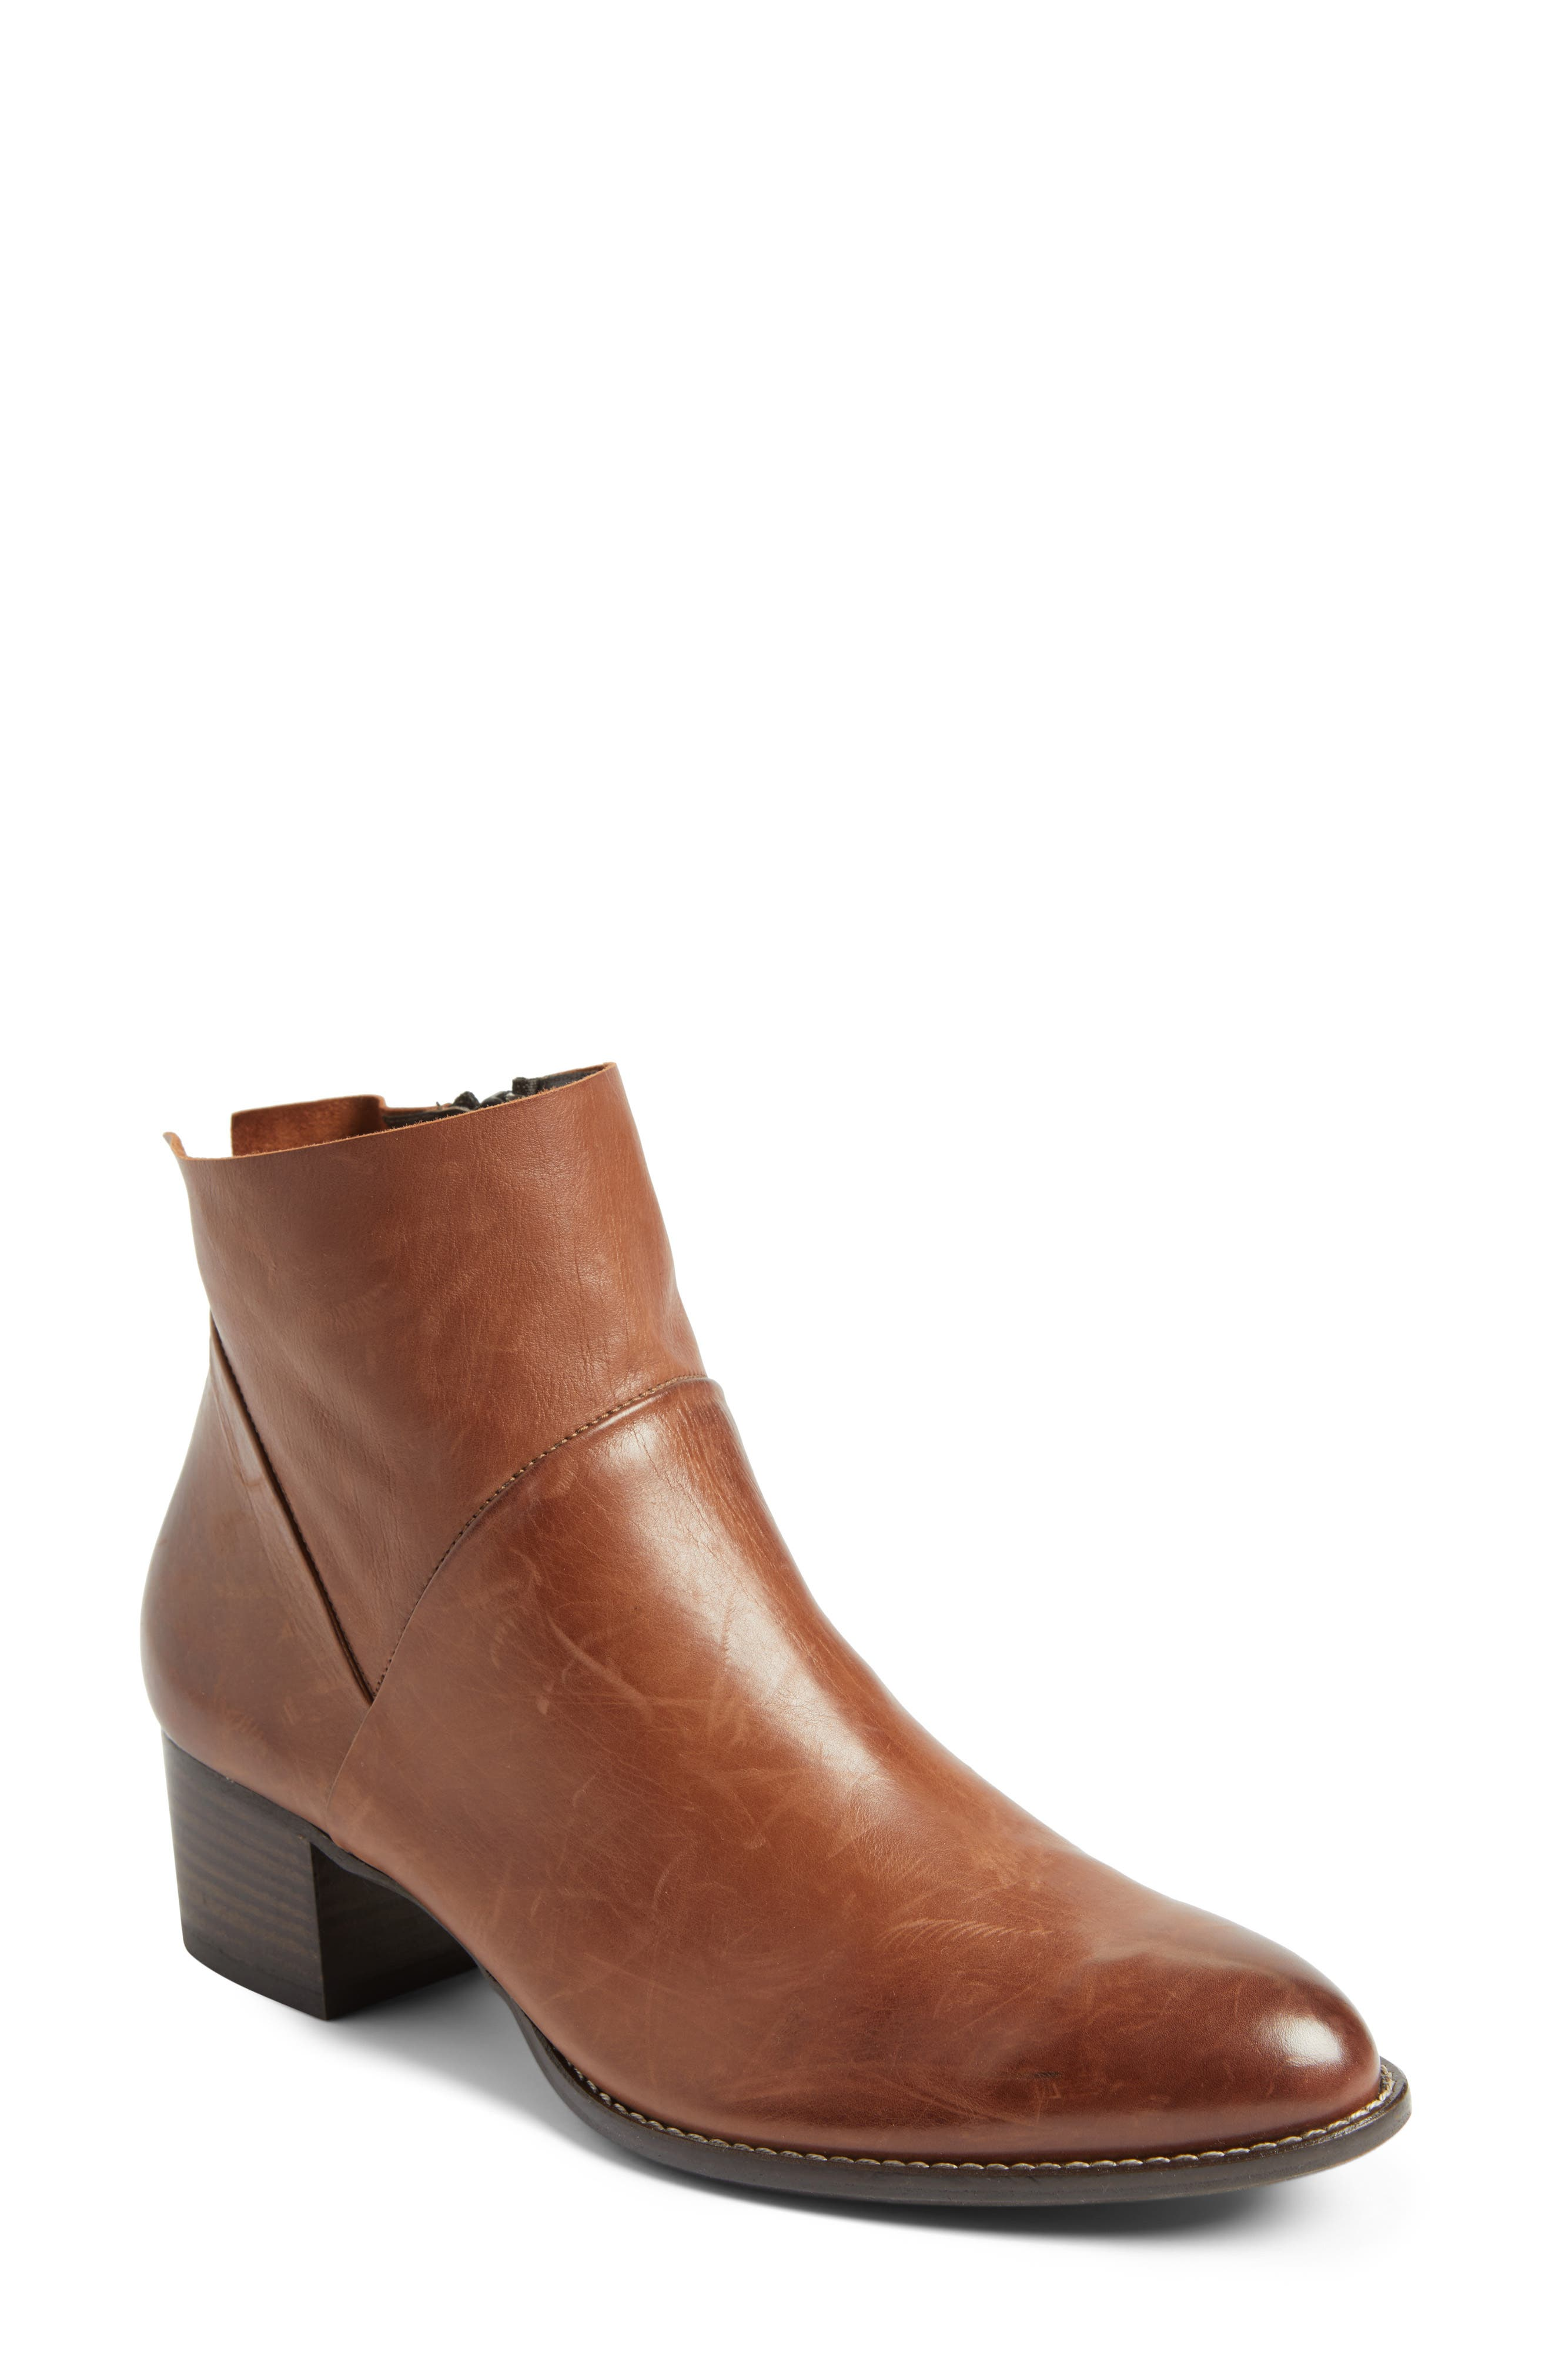 Alternate Image 1 Selected - Paul Green Nelly Bootie (Women)